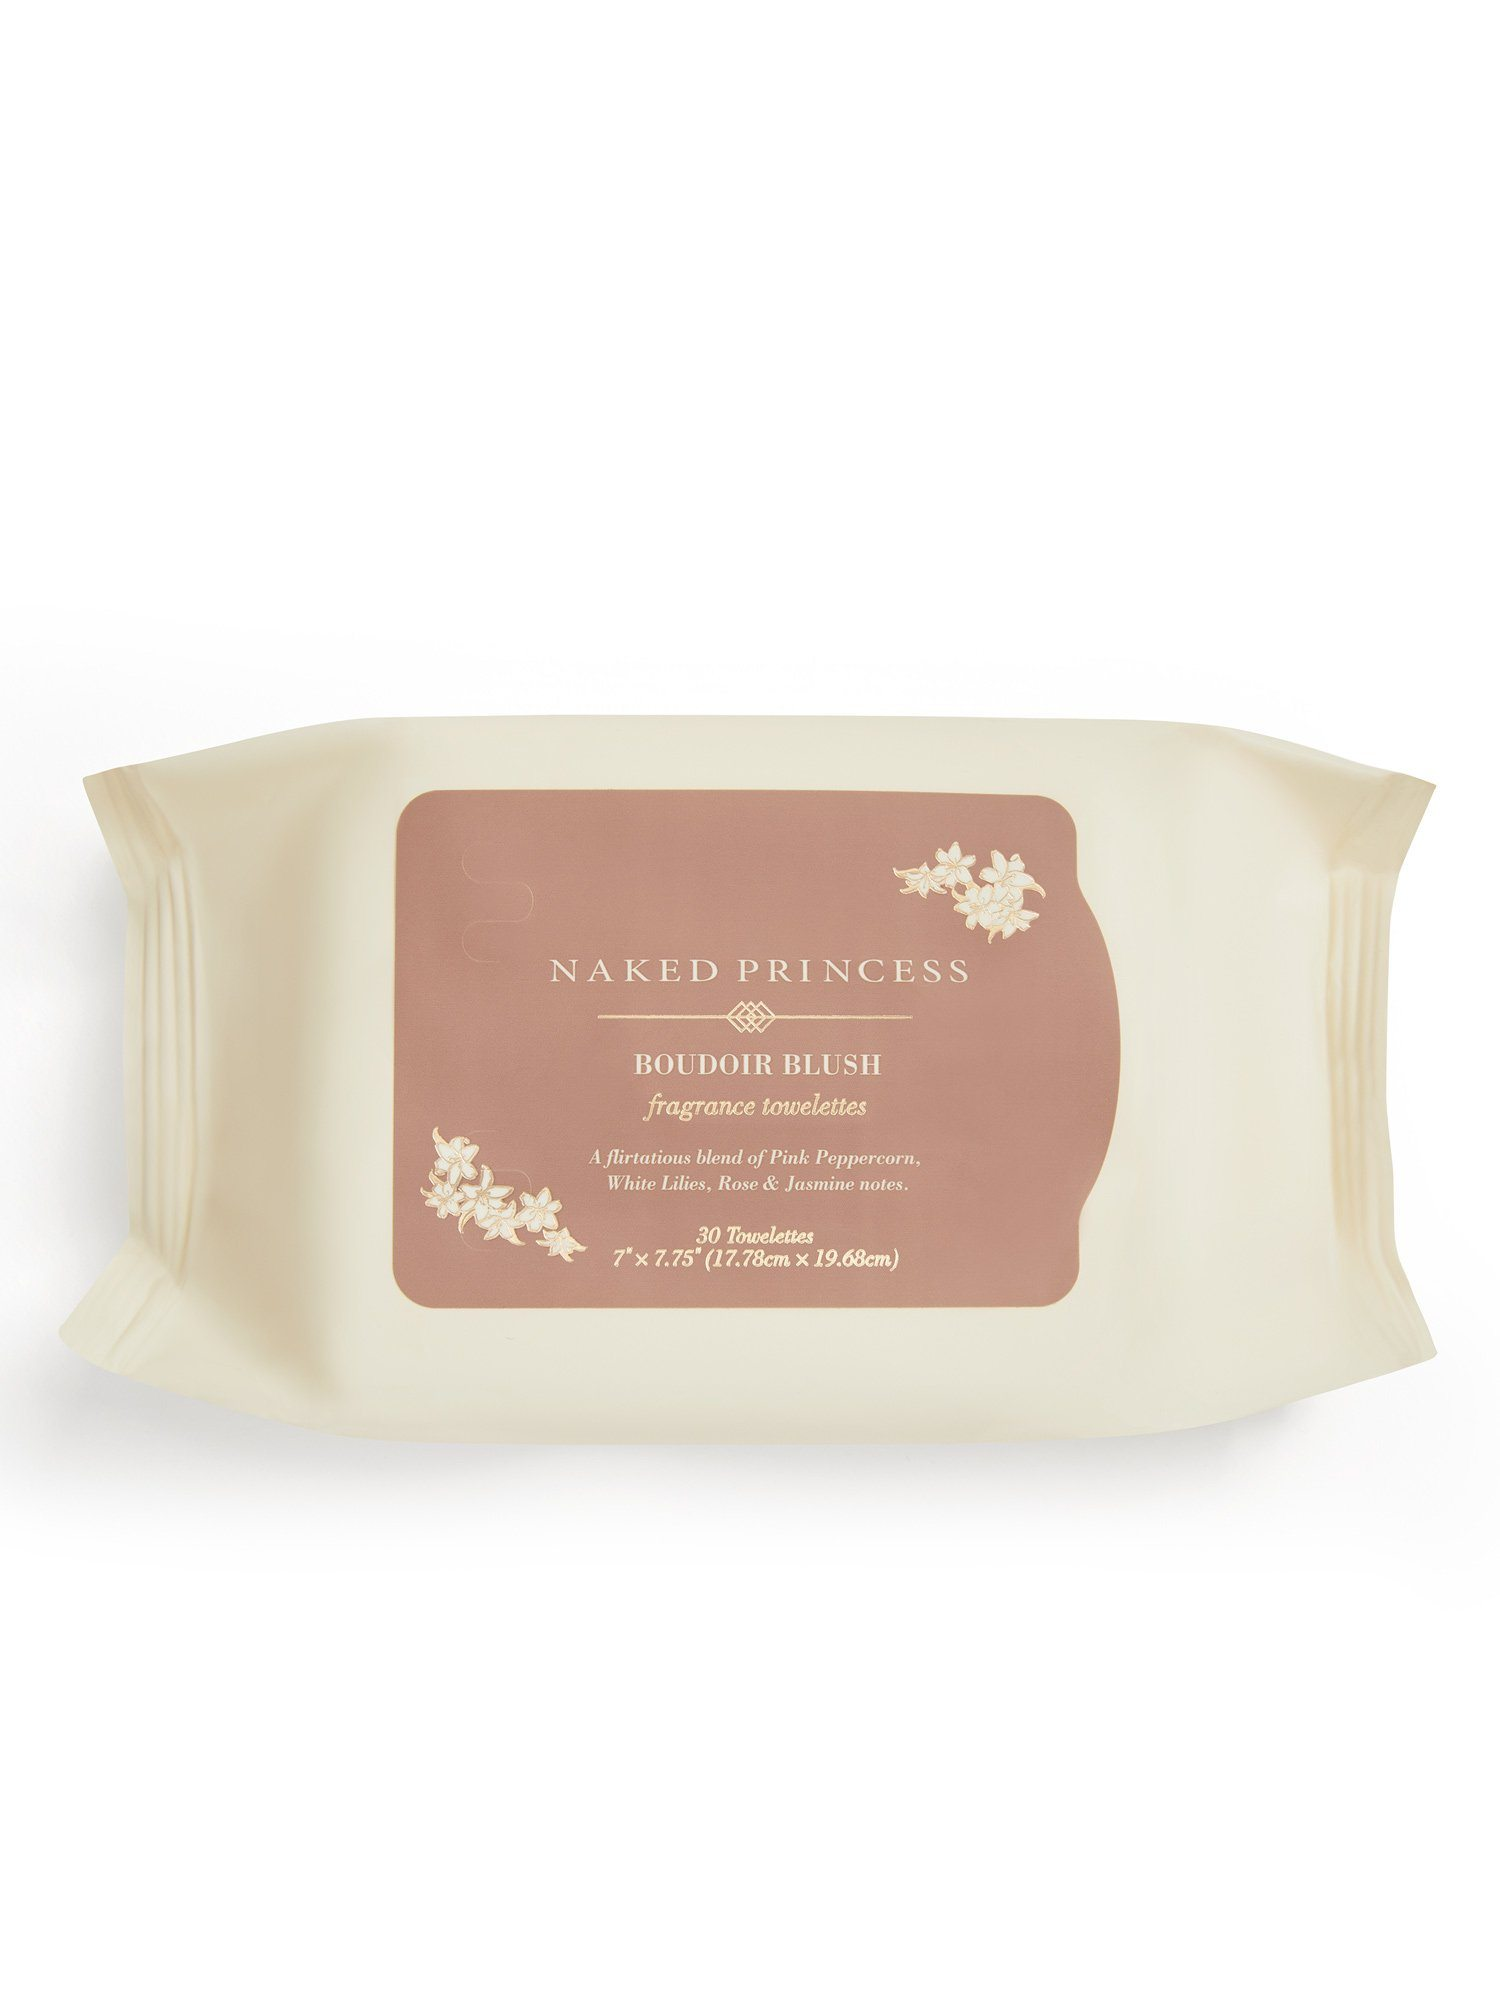 Fragrance Towelettes - Boudoir Blush Cleanse by Le Marché by NP